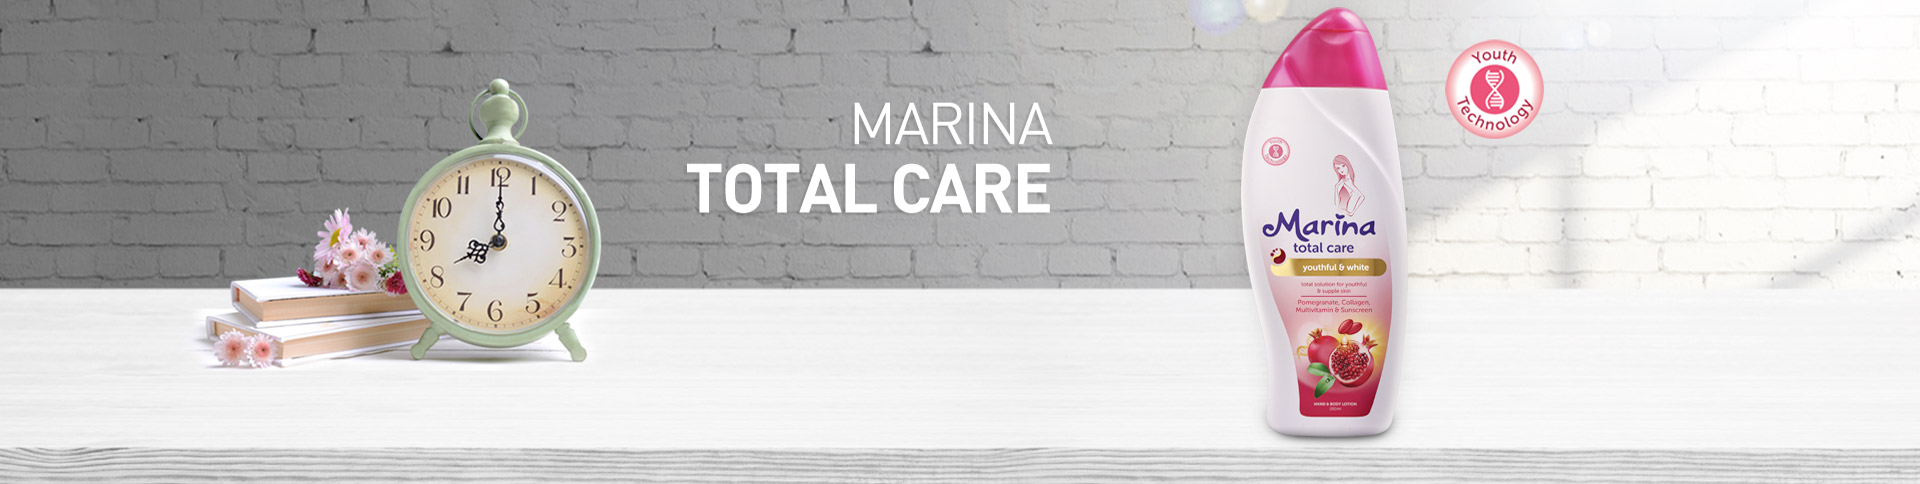 MARINA TOTAL CARE